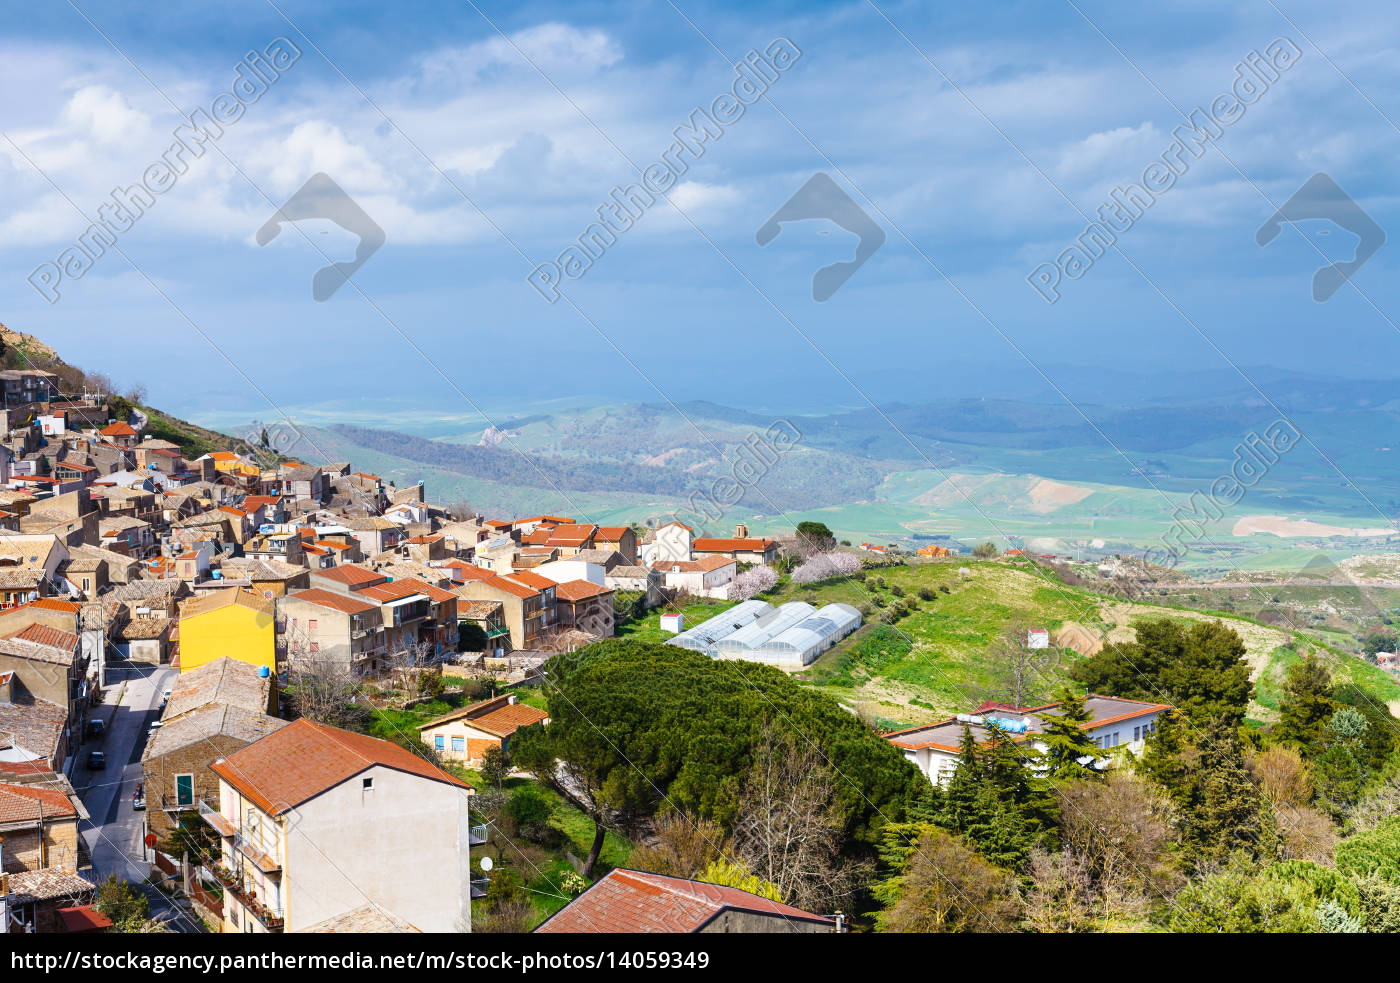 above, view, of, aidone, comune, in - 14059349